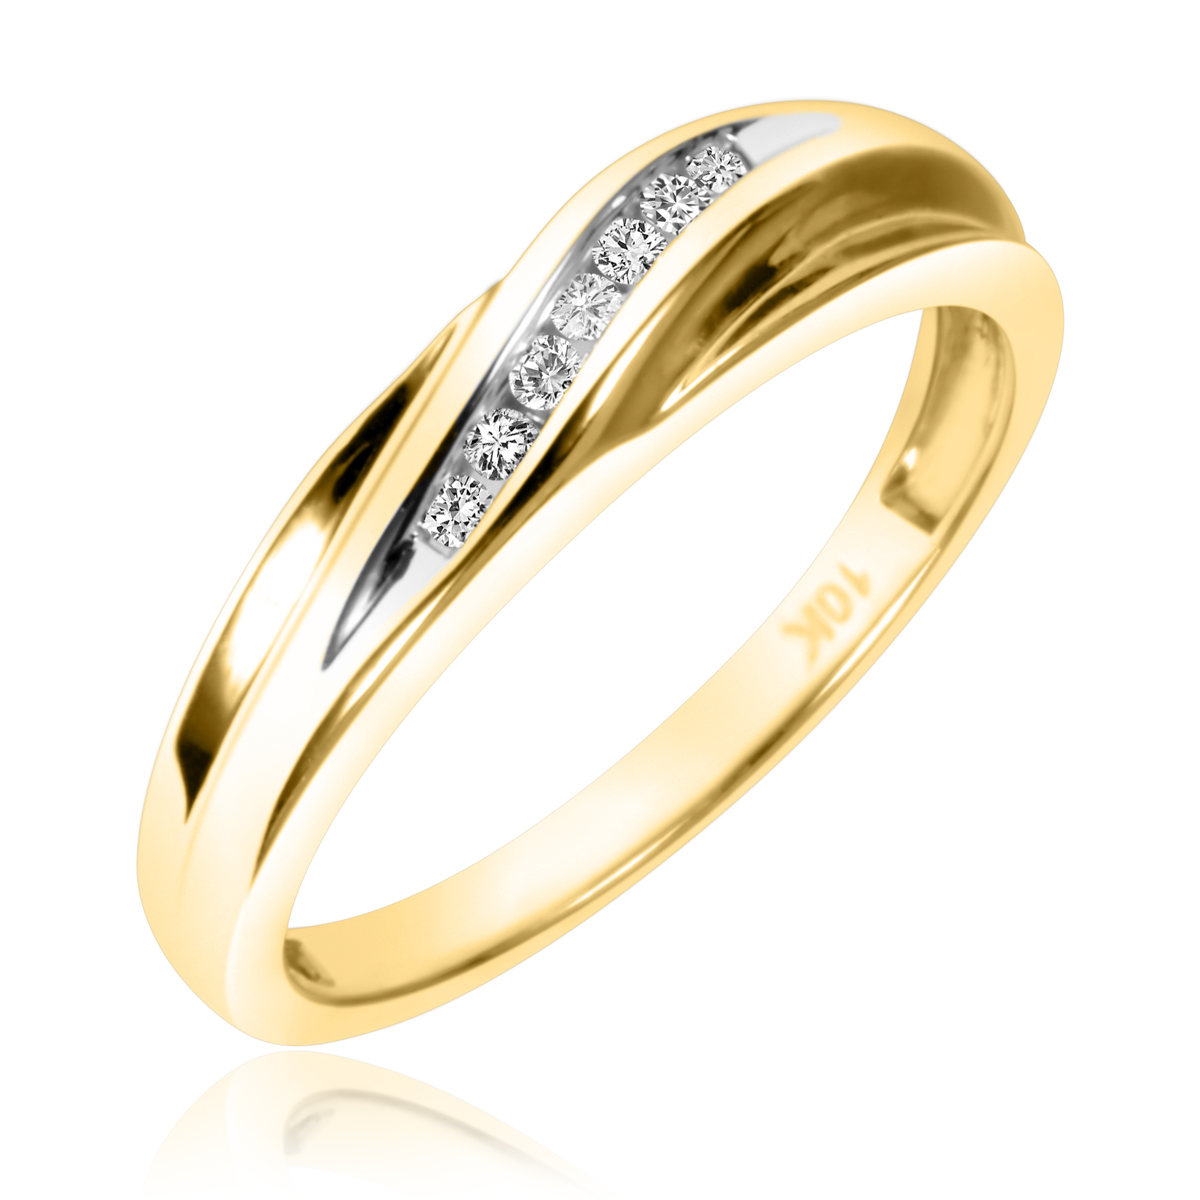 1/10 Carat T.W. Round Cut Diamond Men's Wedding Band 10K Yellow Gold- Size 8